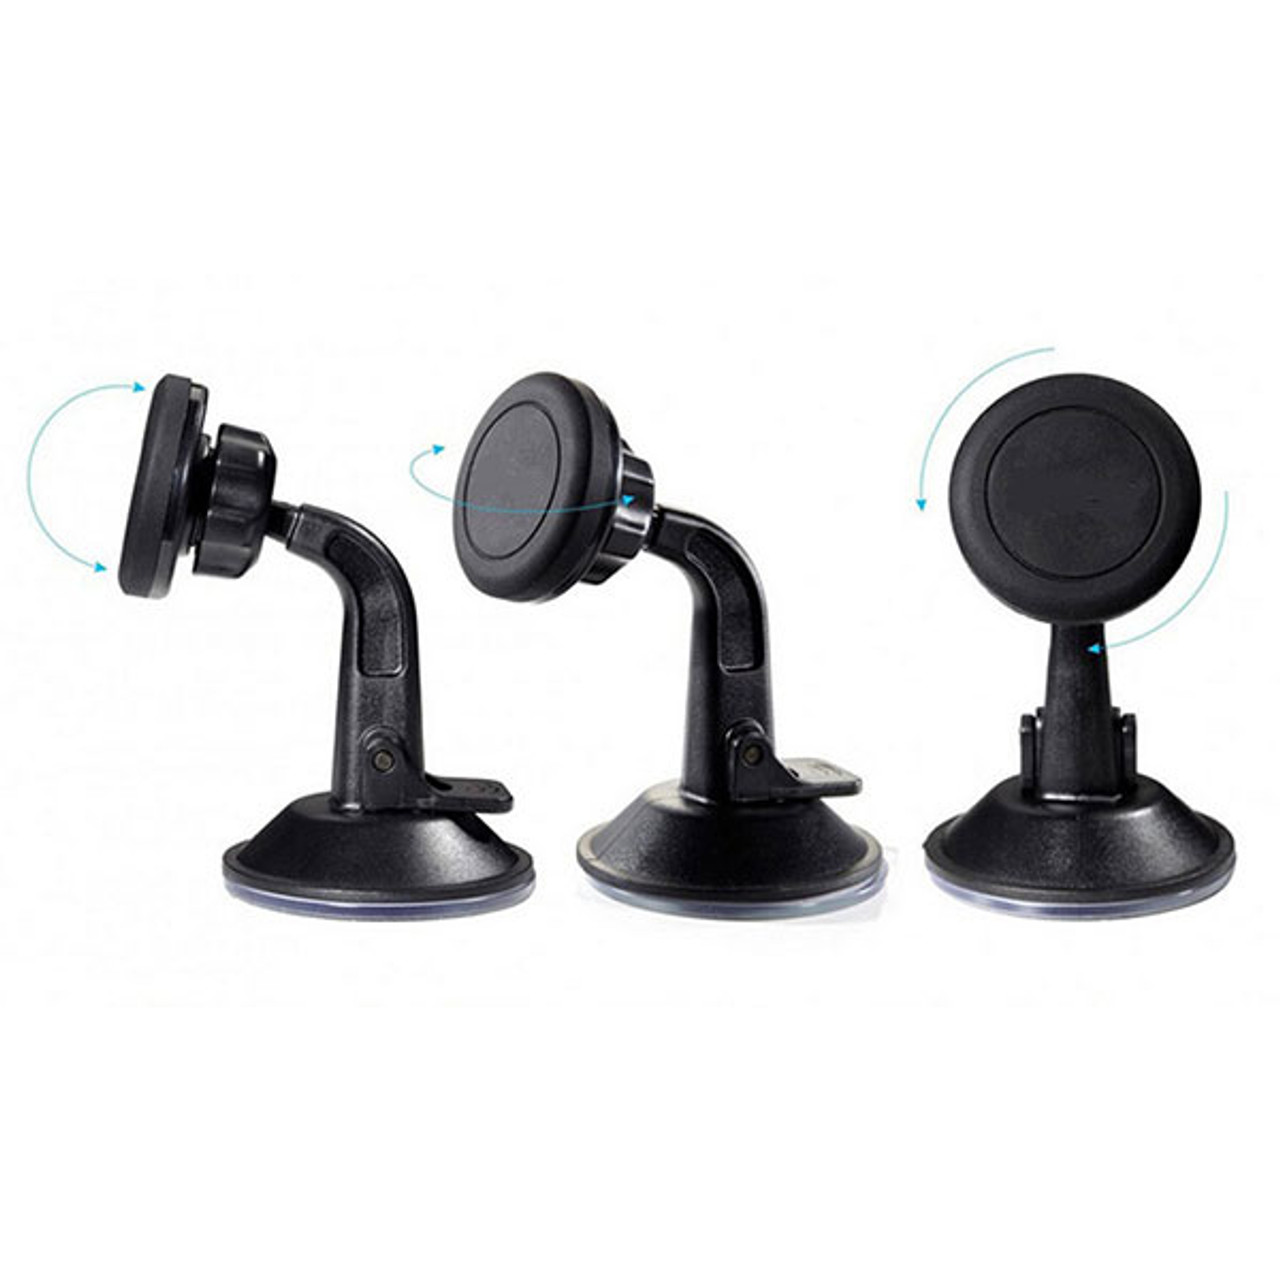 Product image for Magnetic Car Universal Holder - Black | CX Computer Superstore